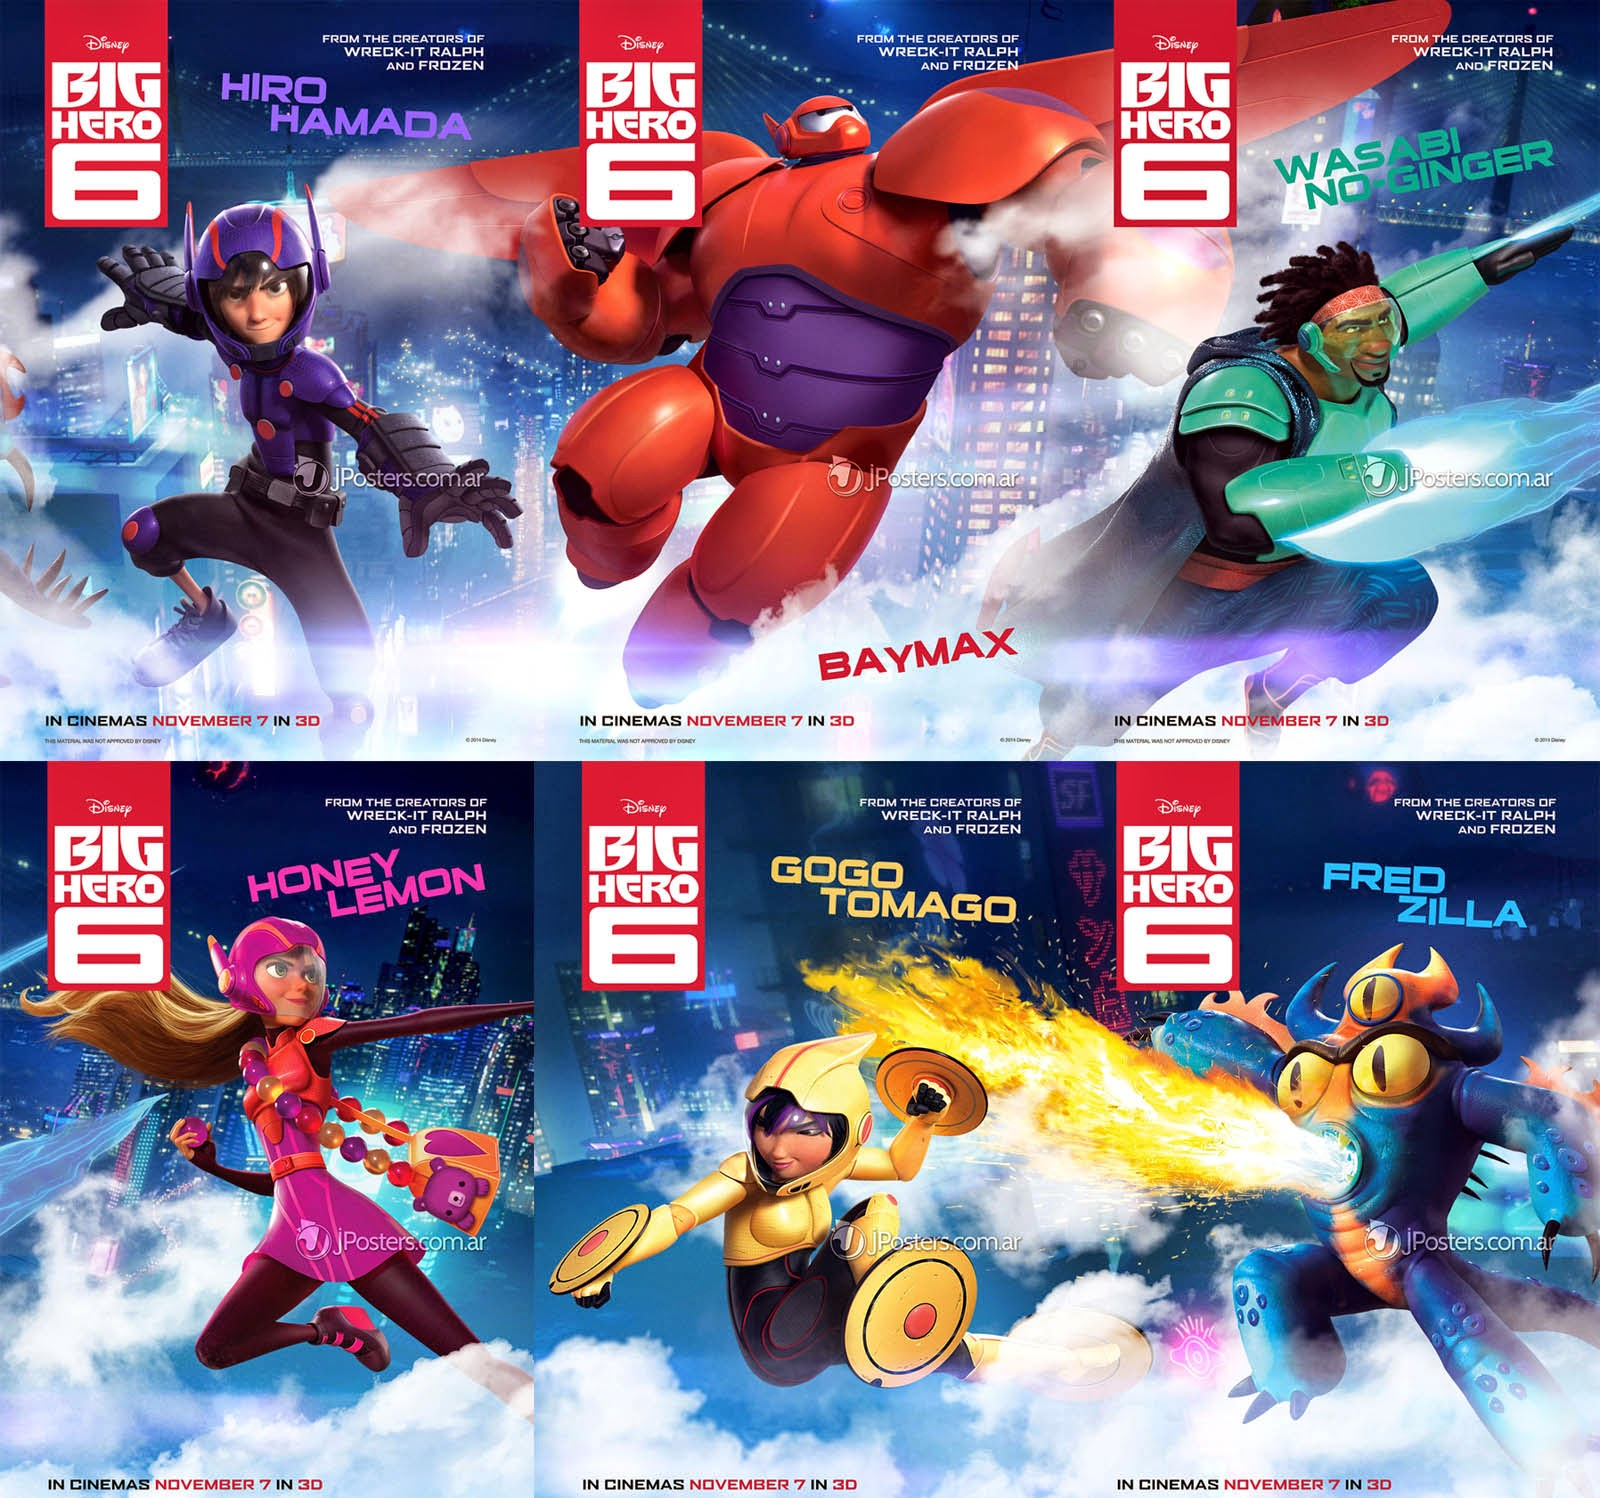 Big hero 6 credits scene they are not only books - Big Hero 6 One Thing I Would Change